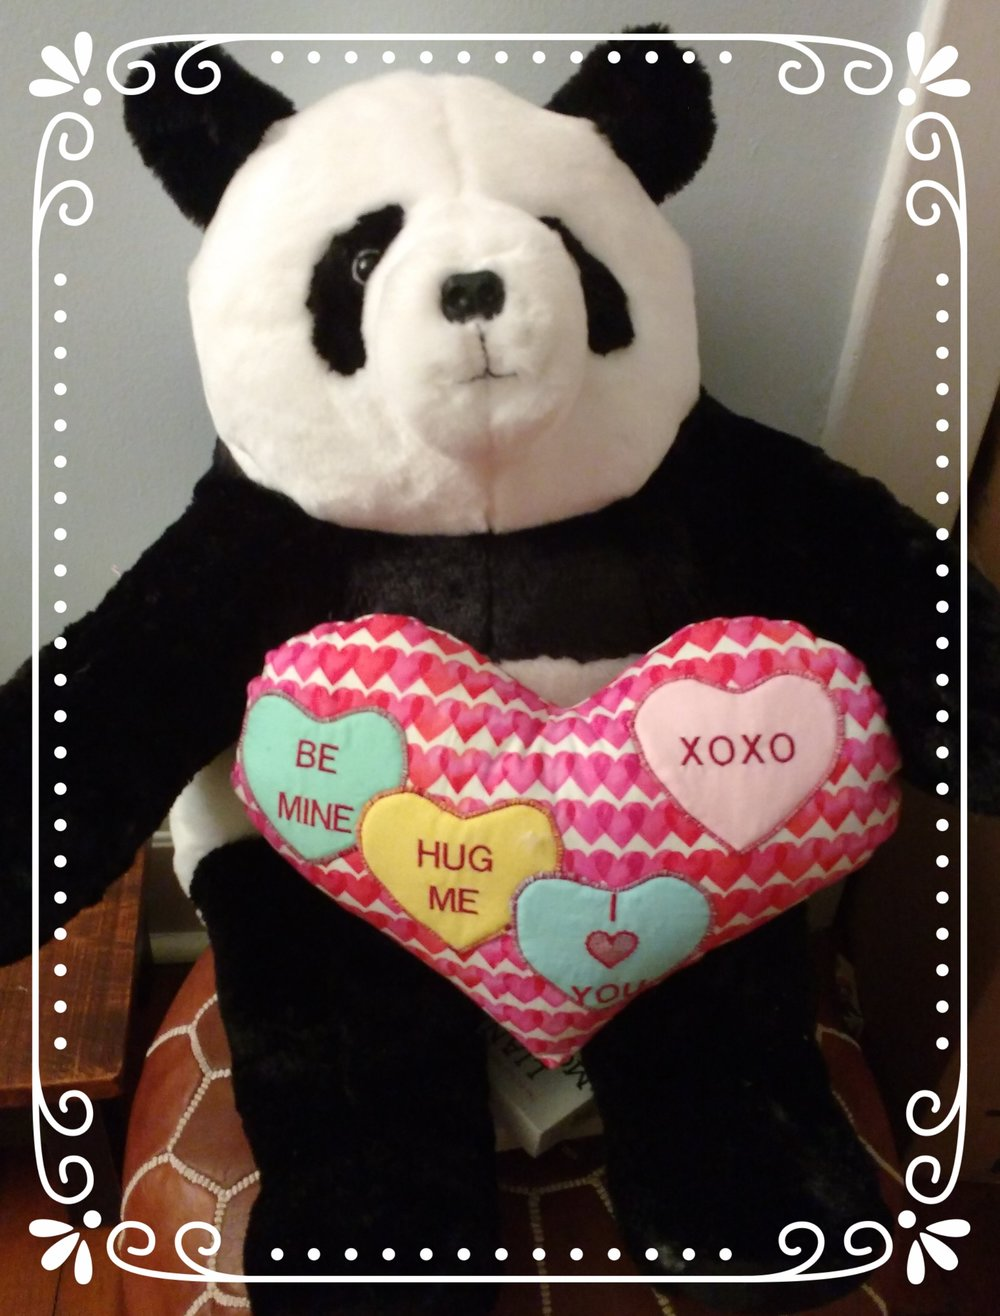 For anyone looking for a last minute Valentine's gift--this sweet panda is also at the salon.  He is the softest stuffed panda you have ever hugged.  I dare you to stop by and see! :)